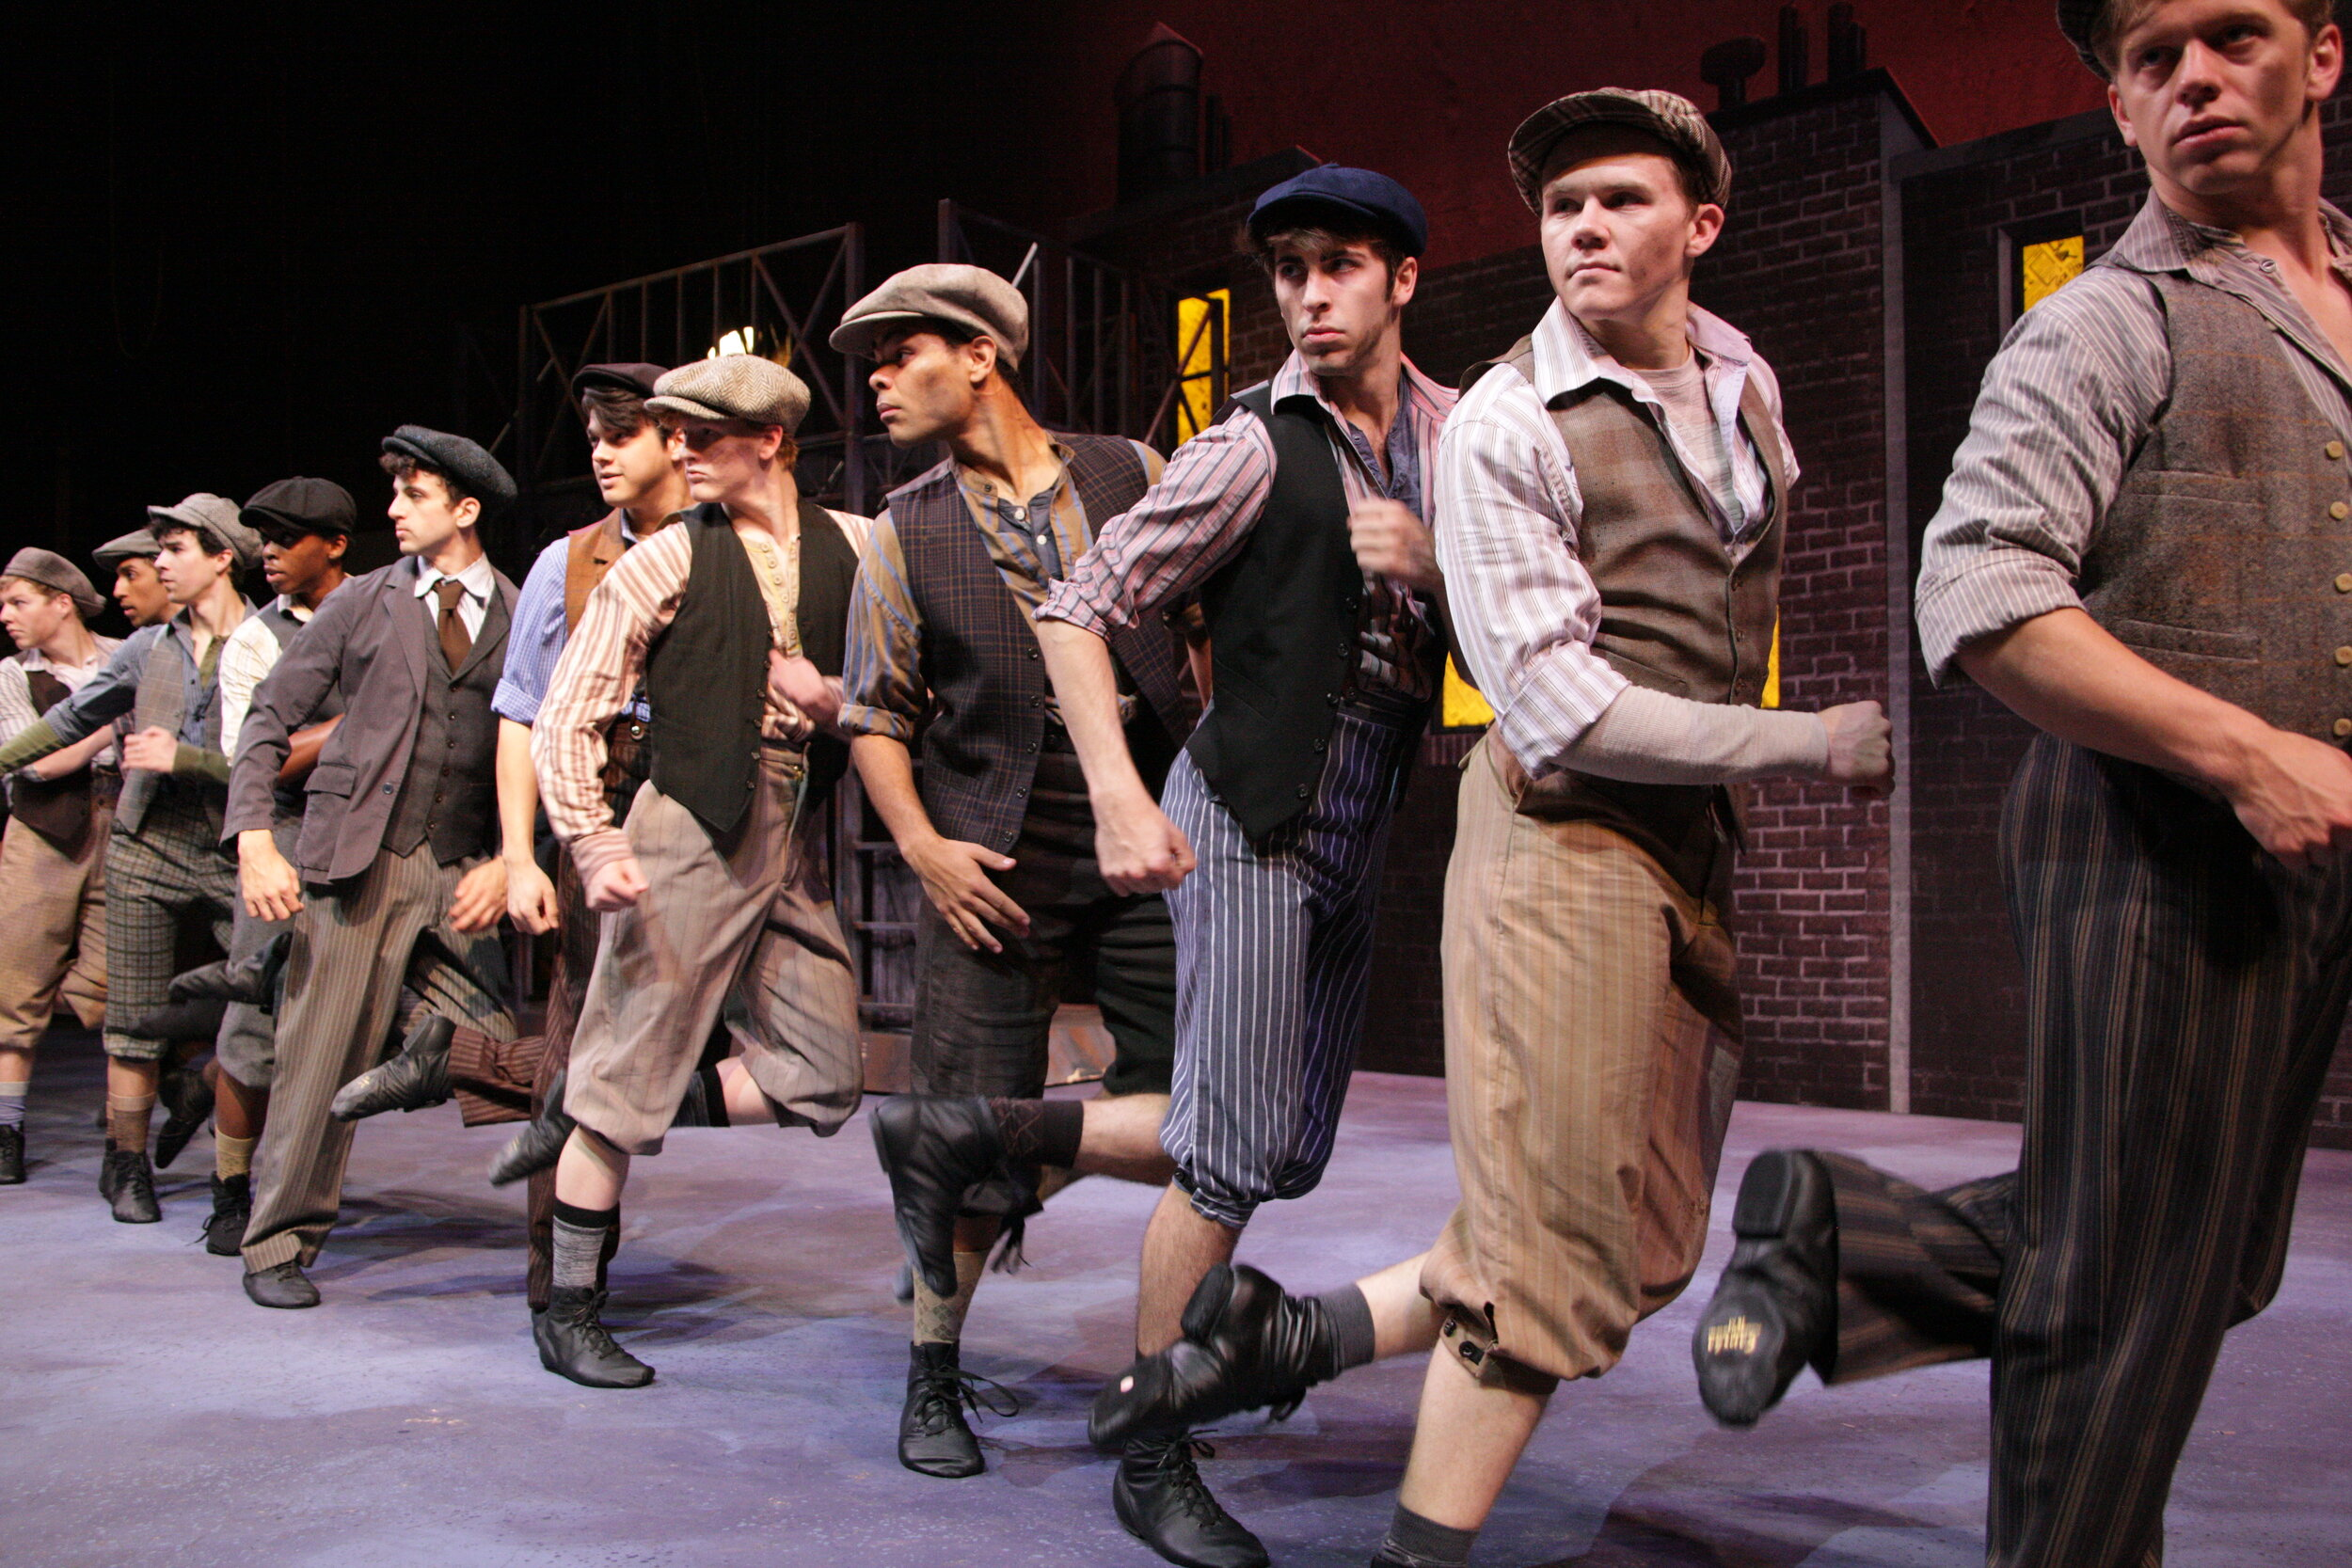 Distressed Newsies(Paint)- Newsies! -Music Theatre Wichita 2017  All designs by the summer staff of MTW. Photos Courtesy of Christopher Clark and Jerry Fritchman.